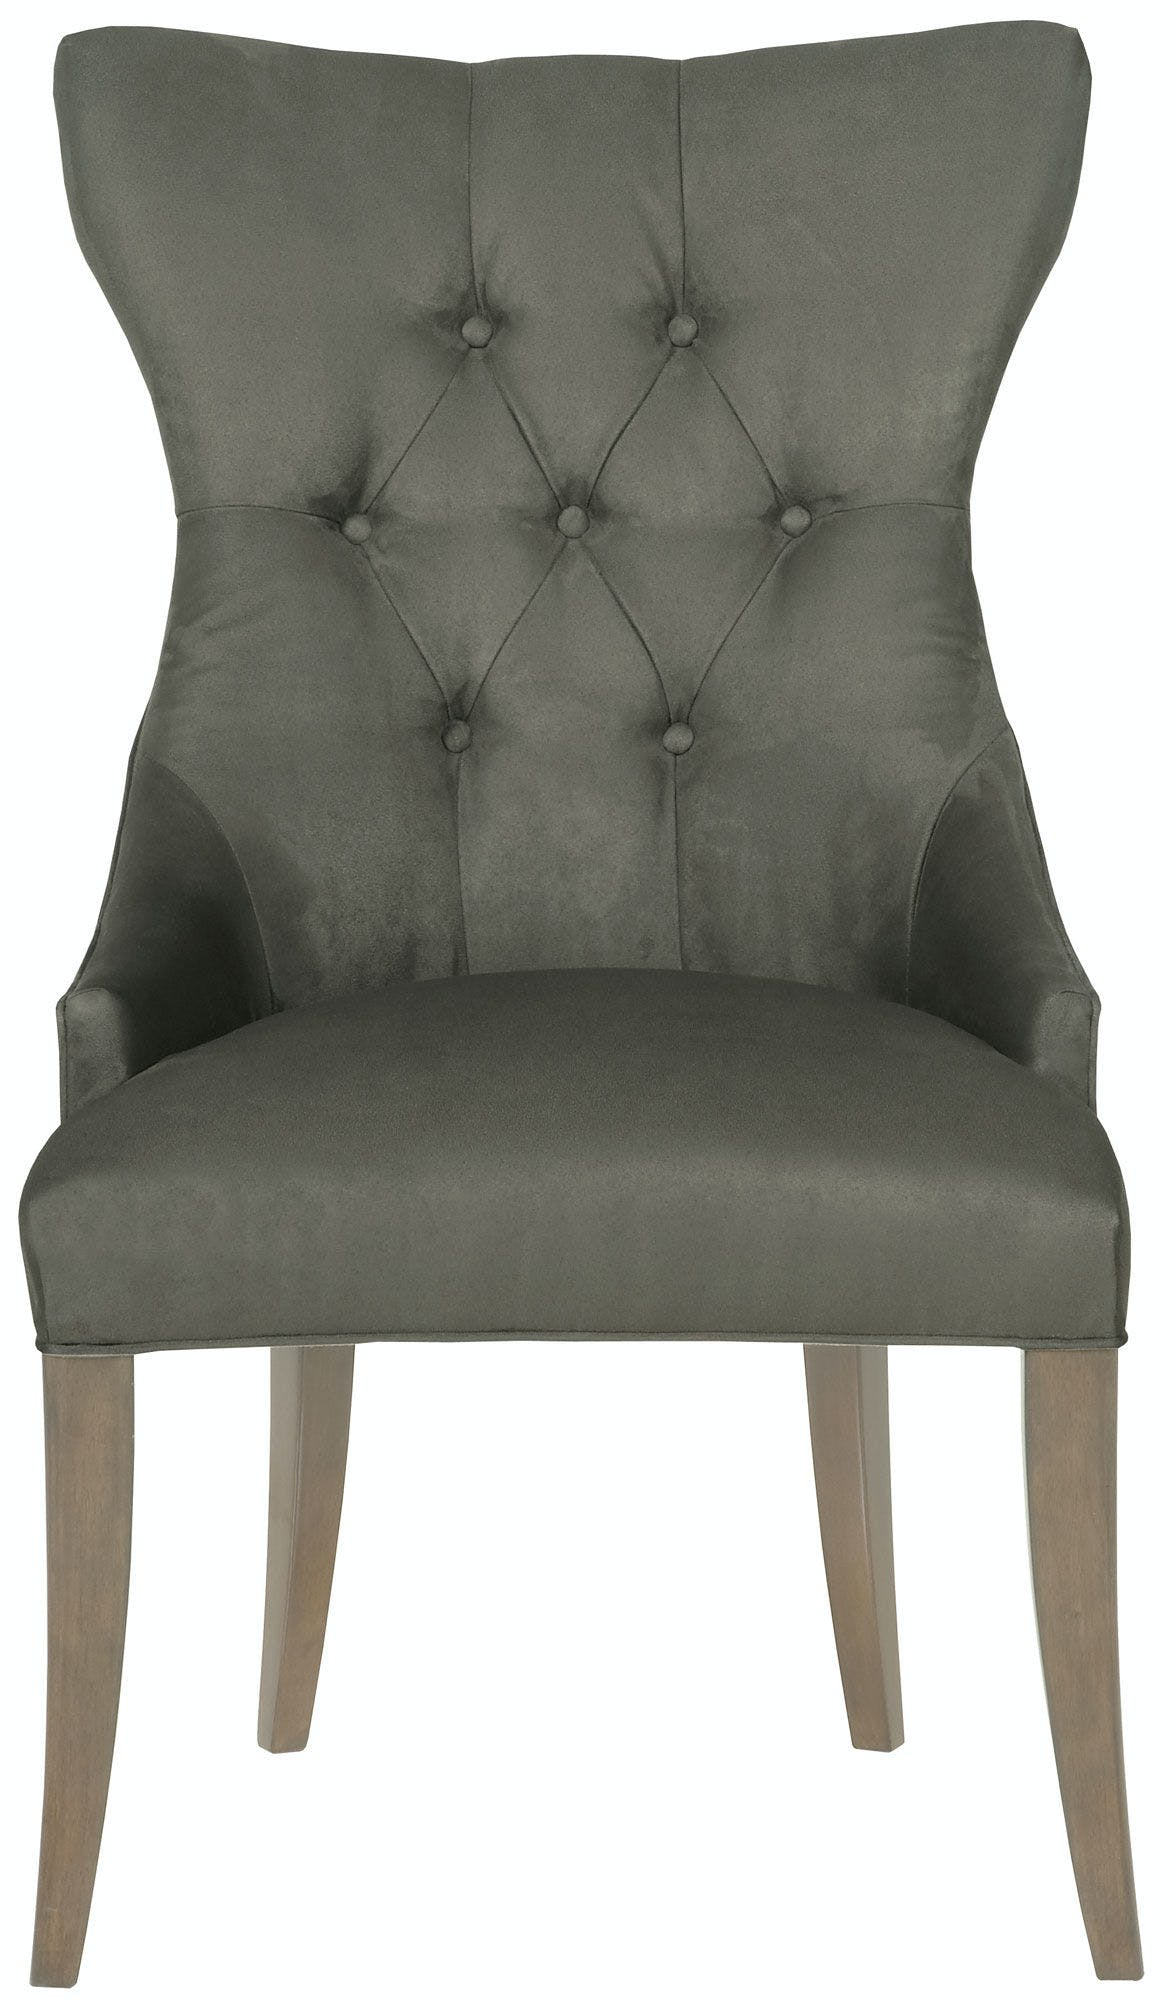 Contempo Dining Room Tufted Back Chair Ctp319542a Walter E Smithe Furniture Design